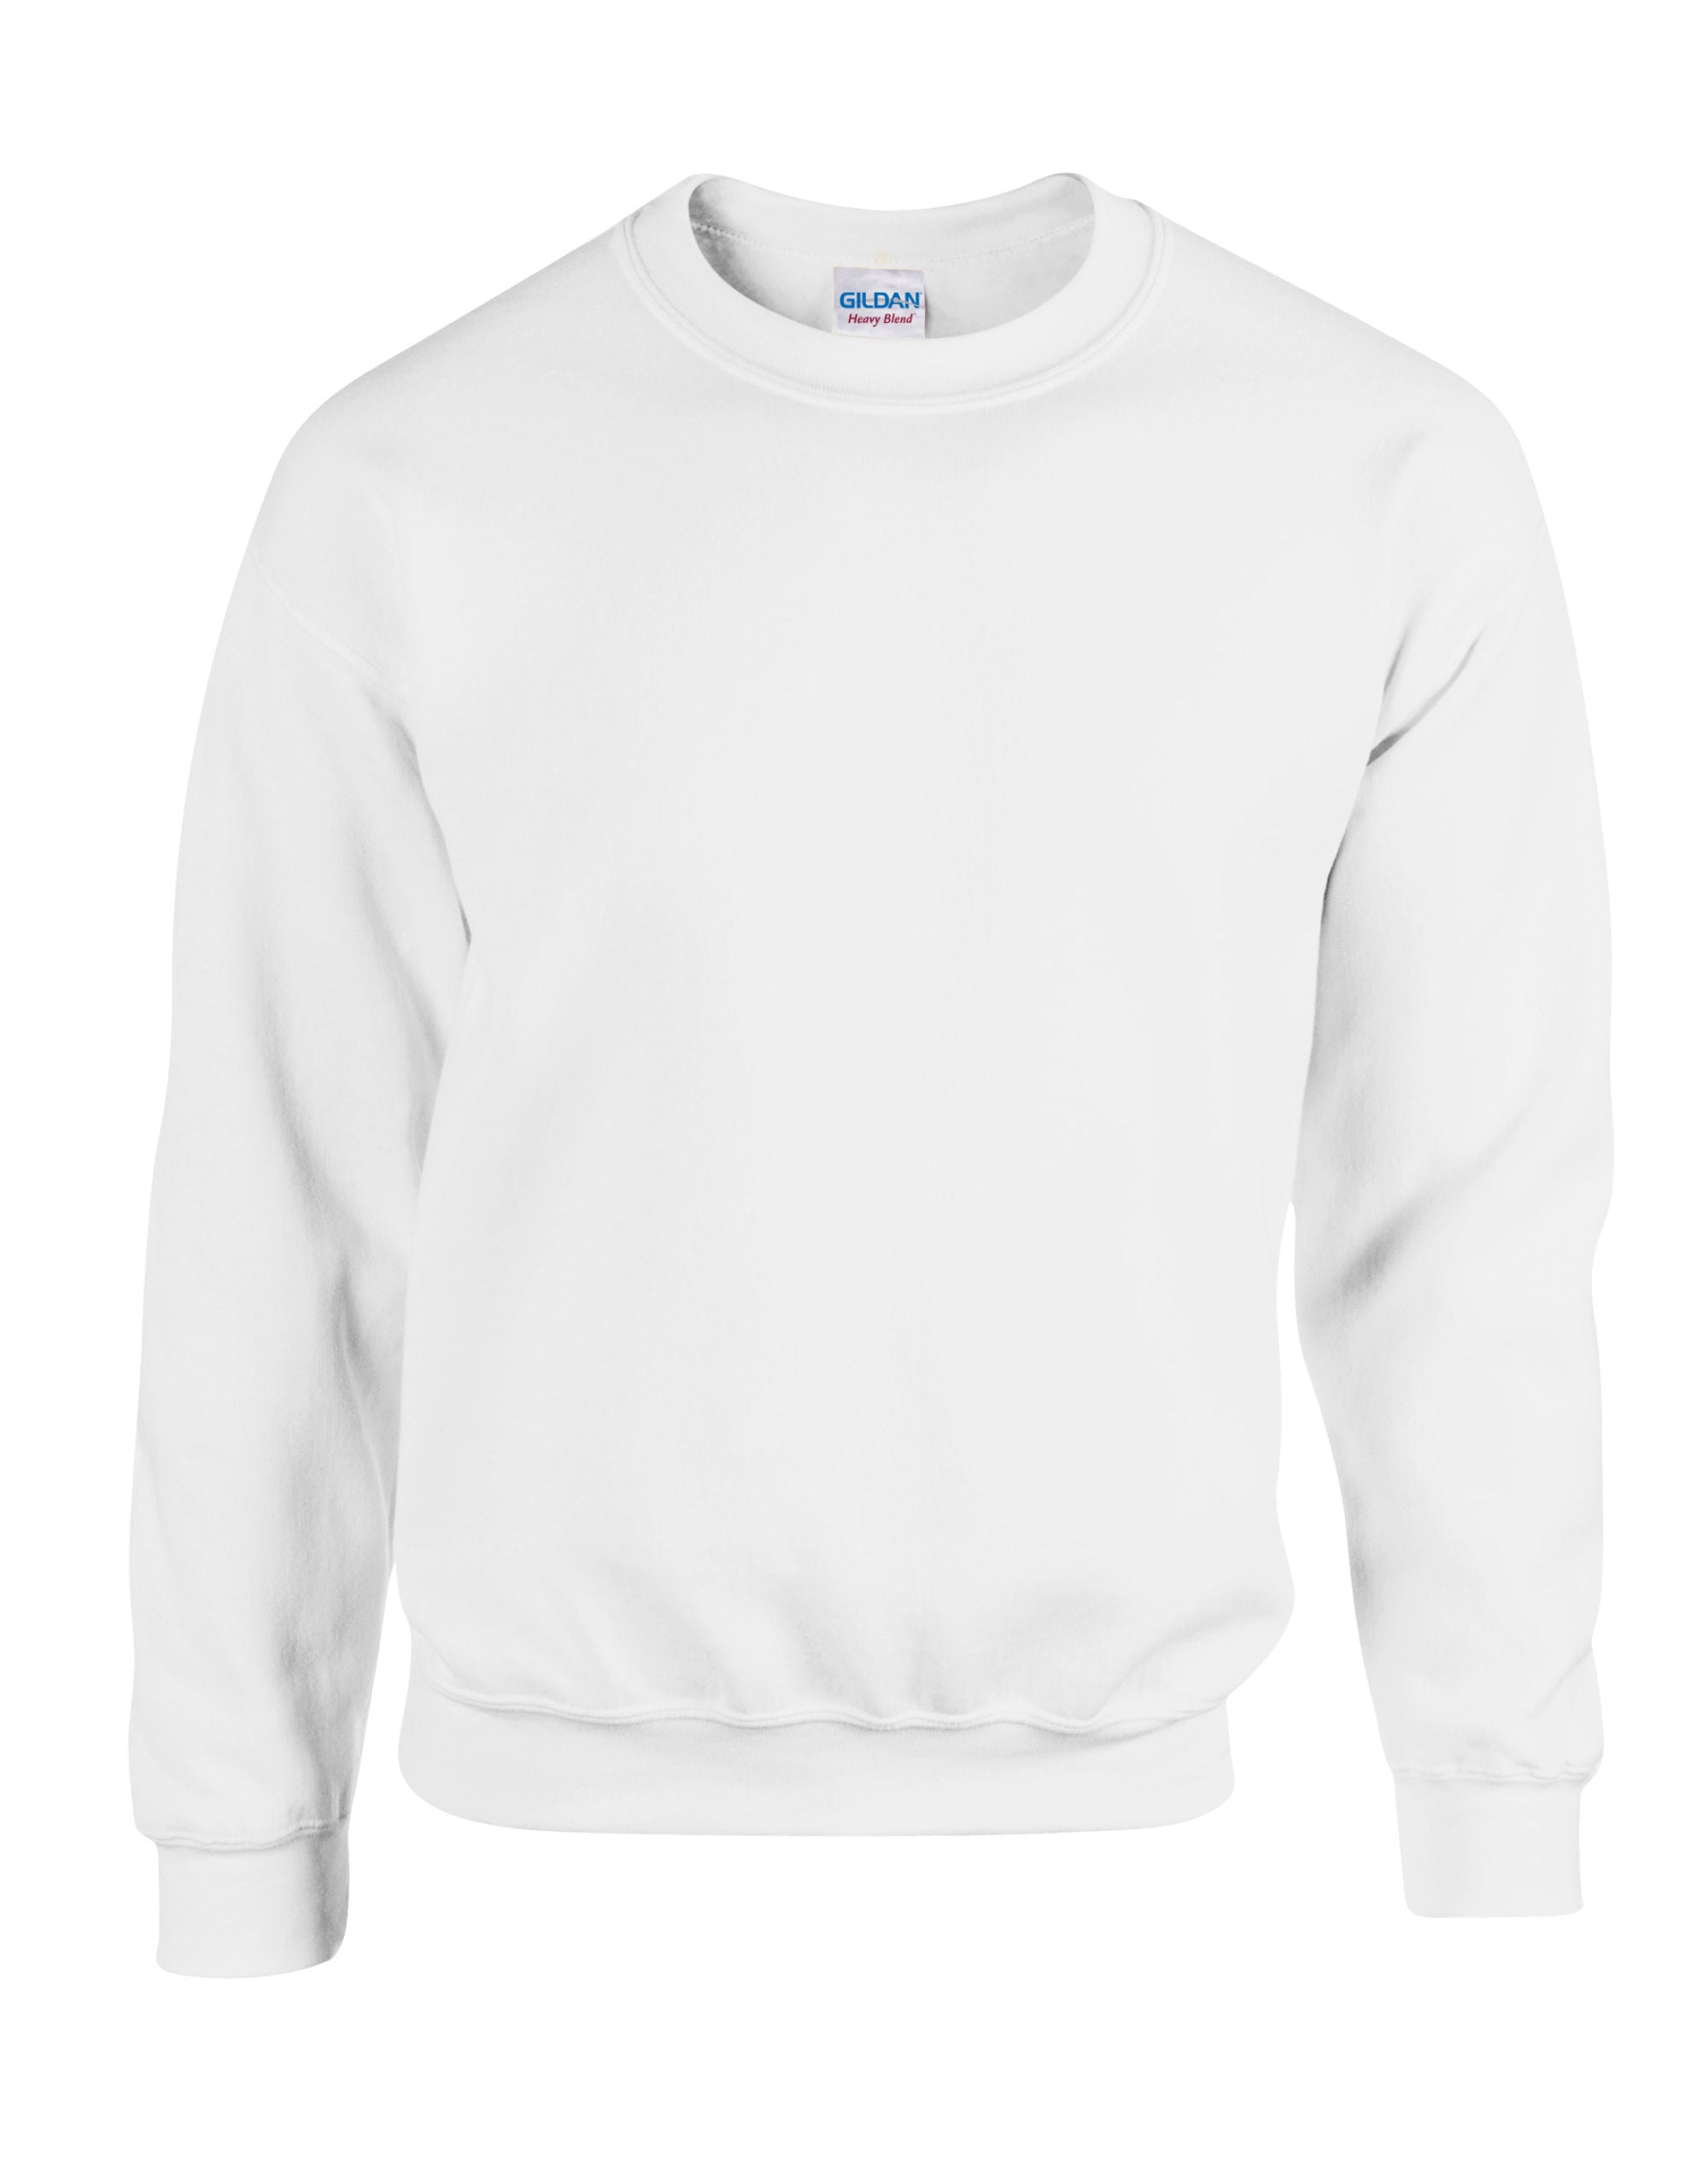 25 x Sweatshirts with Embroidered LOGO